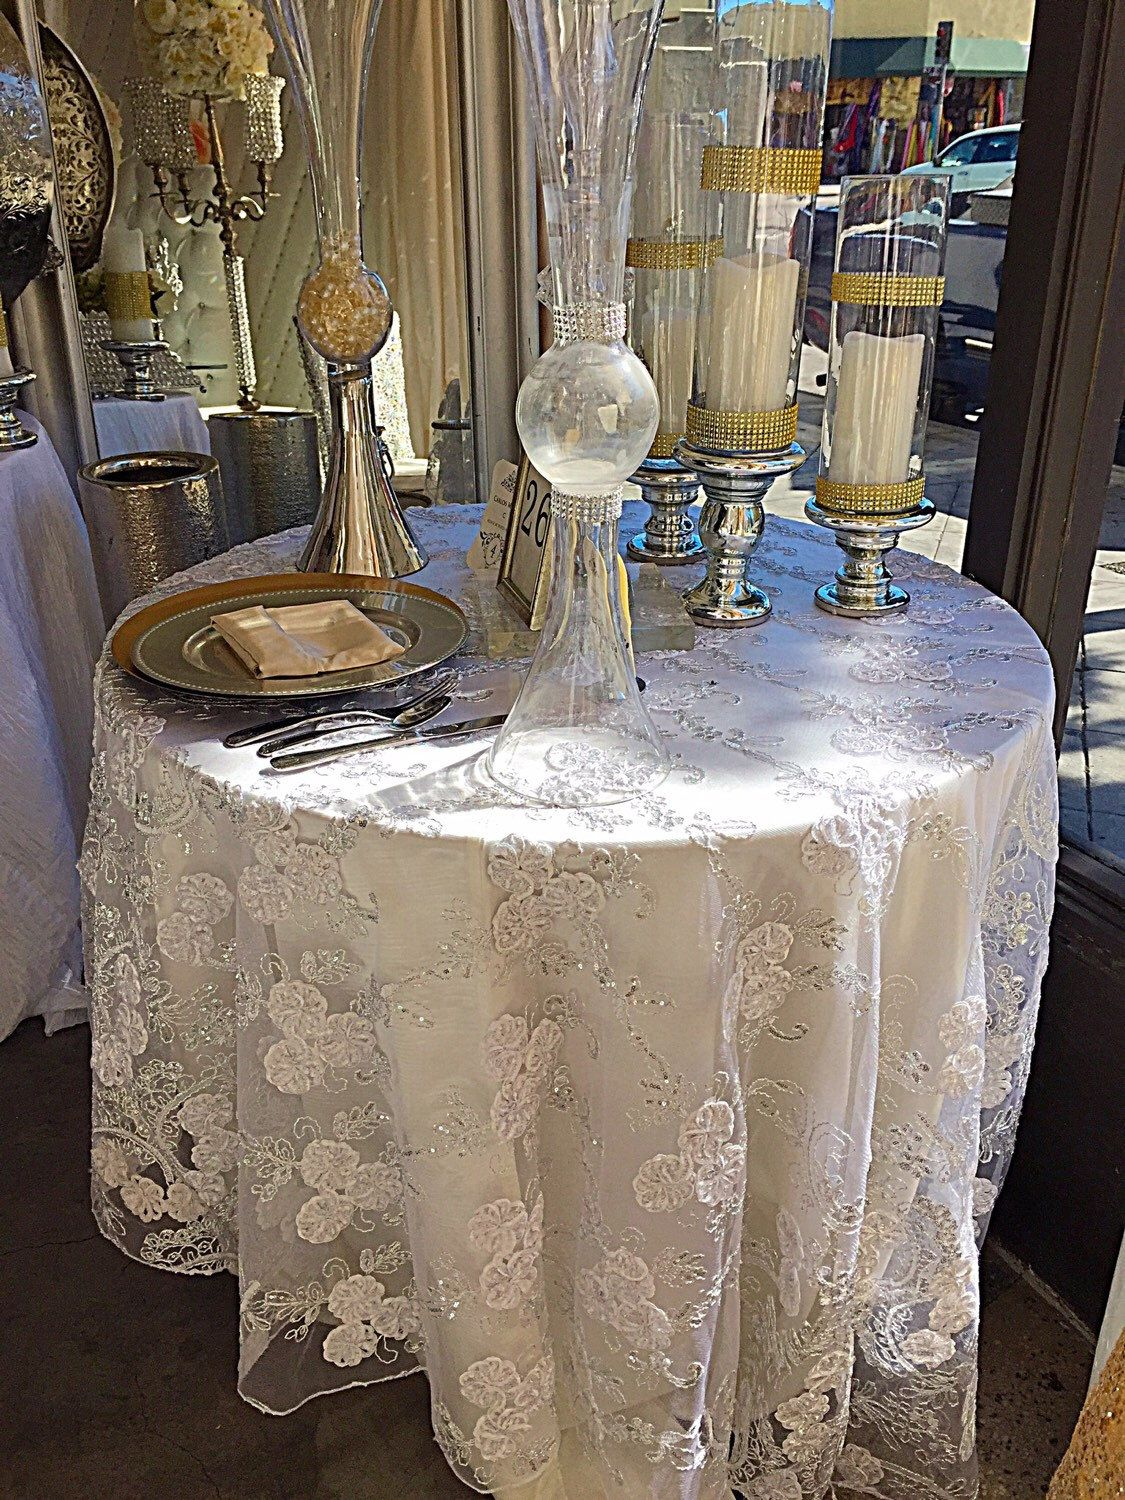 Wedding Tablecloth Vintage White Embroidered Lace Silver Sequence Overlay